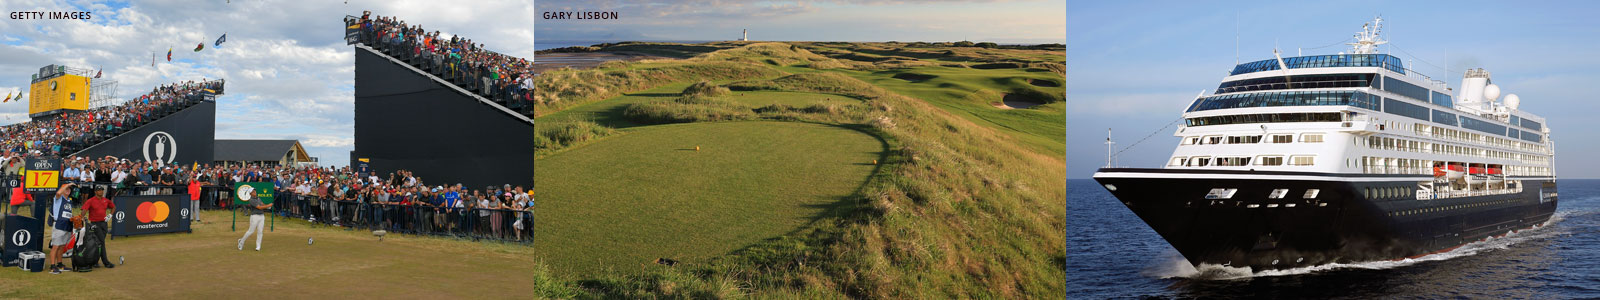 British Open Championship Golf Tours and Golf Cruises